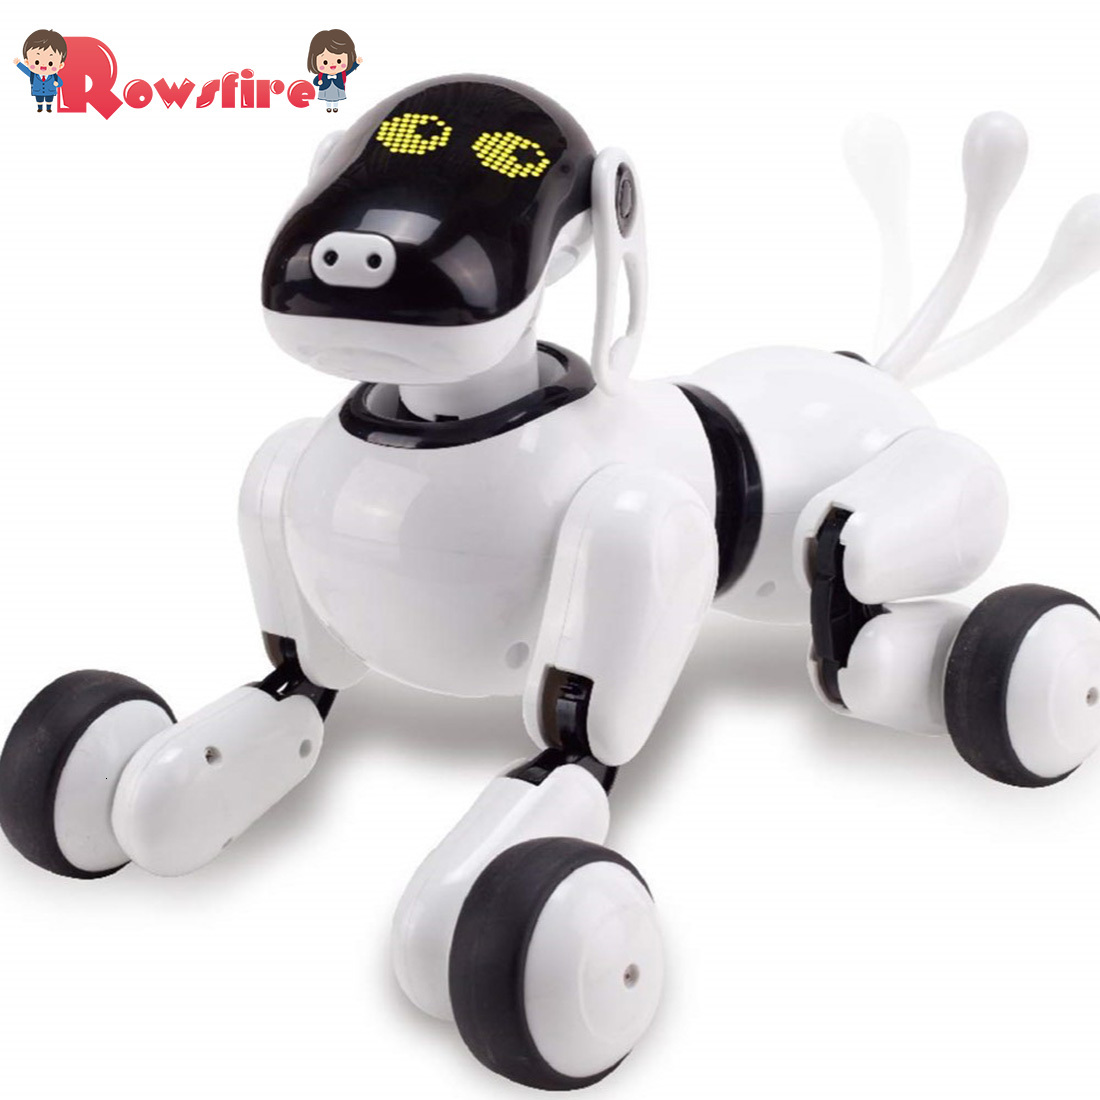 New Children Pet Robot Dog Toy With Interation/ Dancing /Singing /Speech Recognition Control/Touch Sensitive/Actions - White